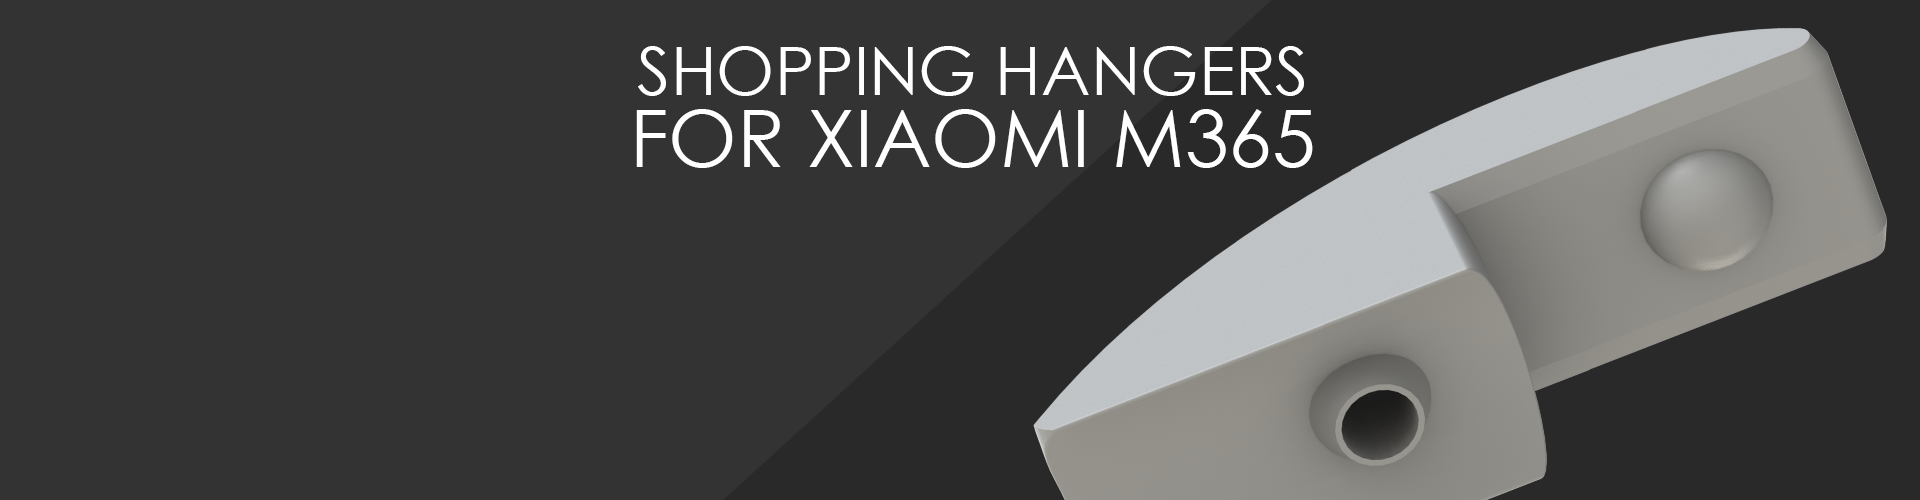 SHOPPING HANGERS FOR XIAOMI M365